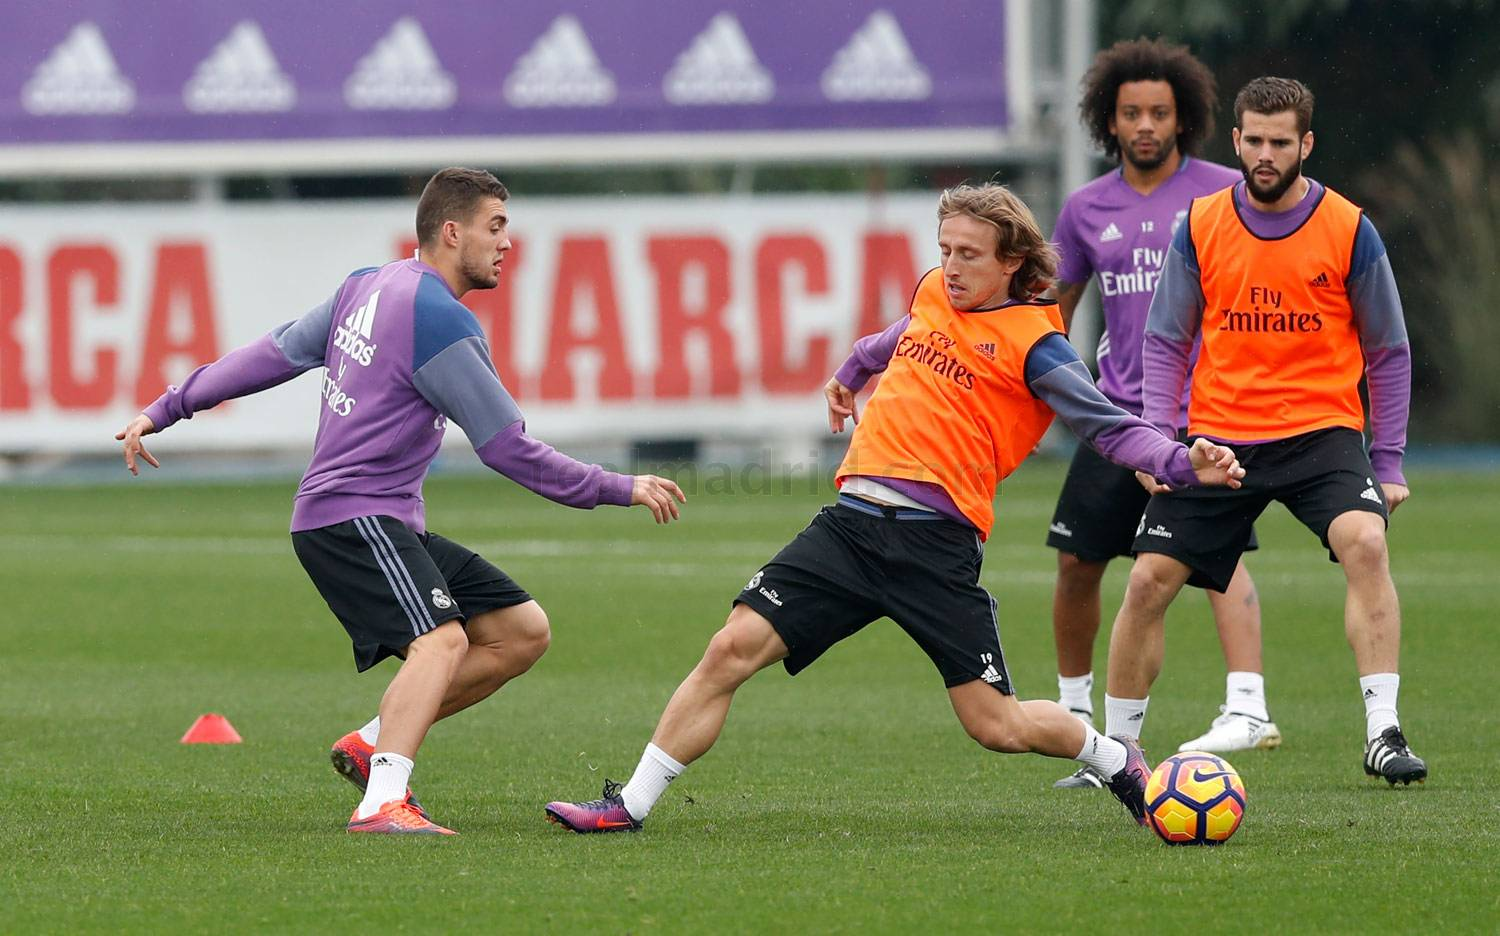 Real Madrid - Entrenamiento del Real Madrid - 04-11-2016